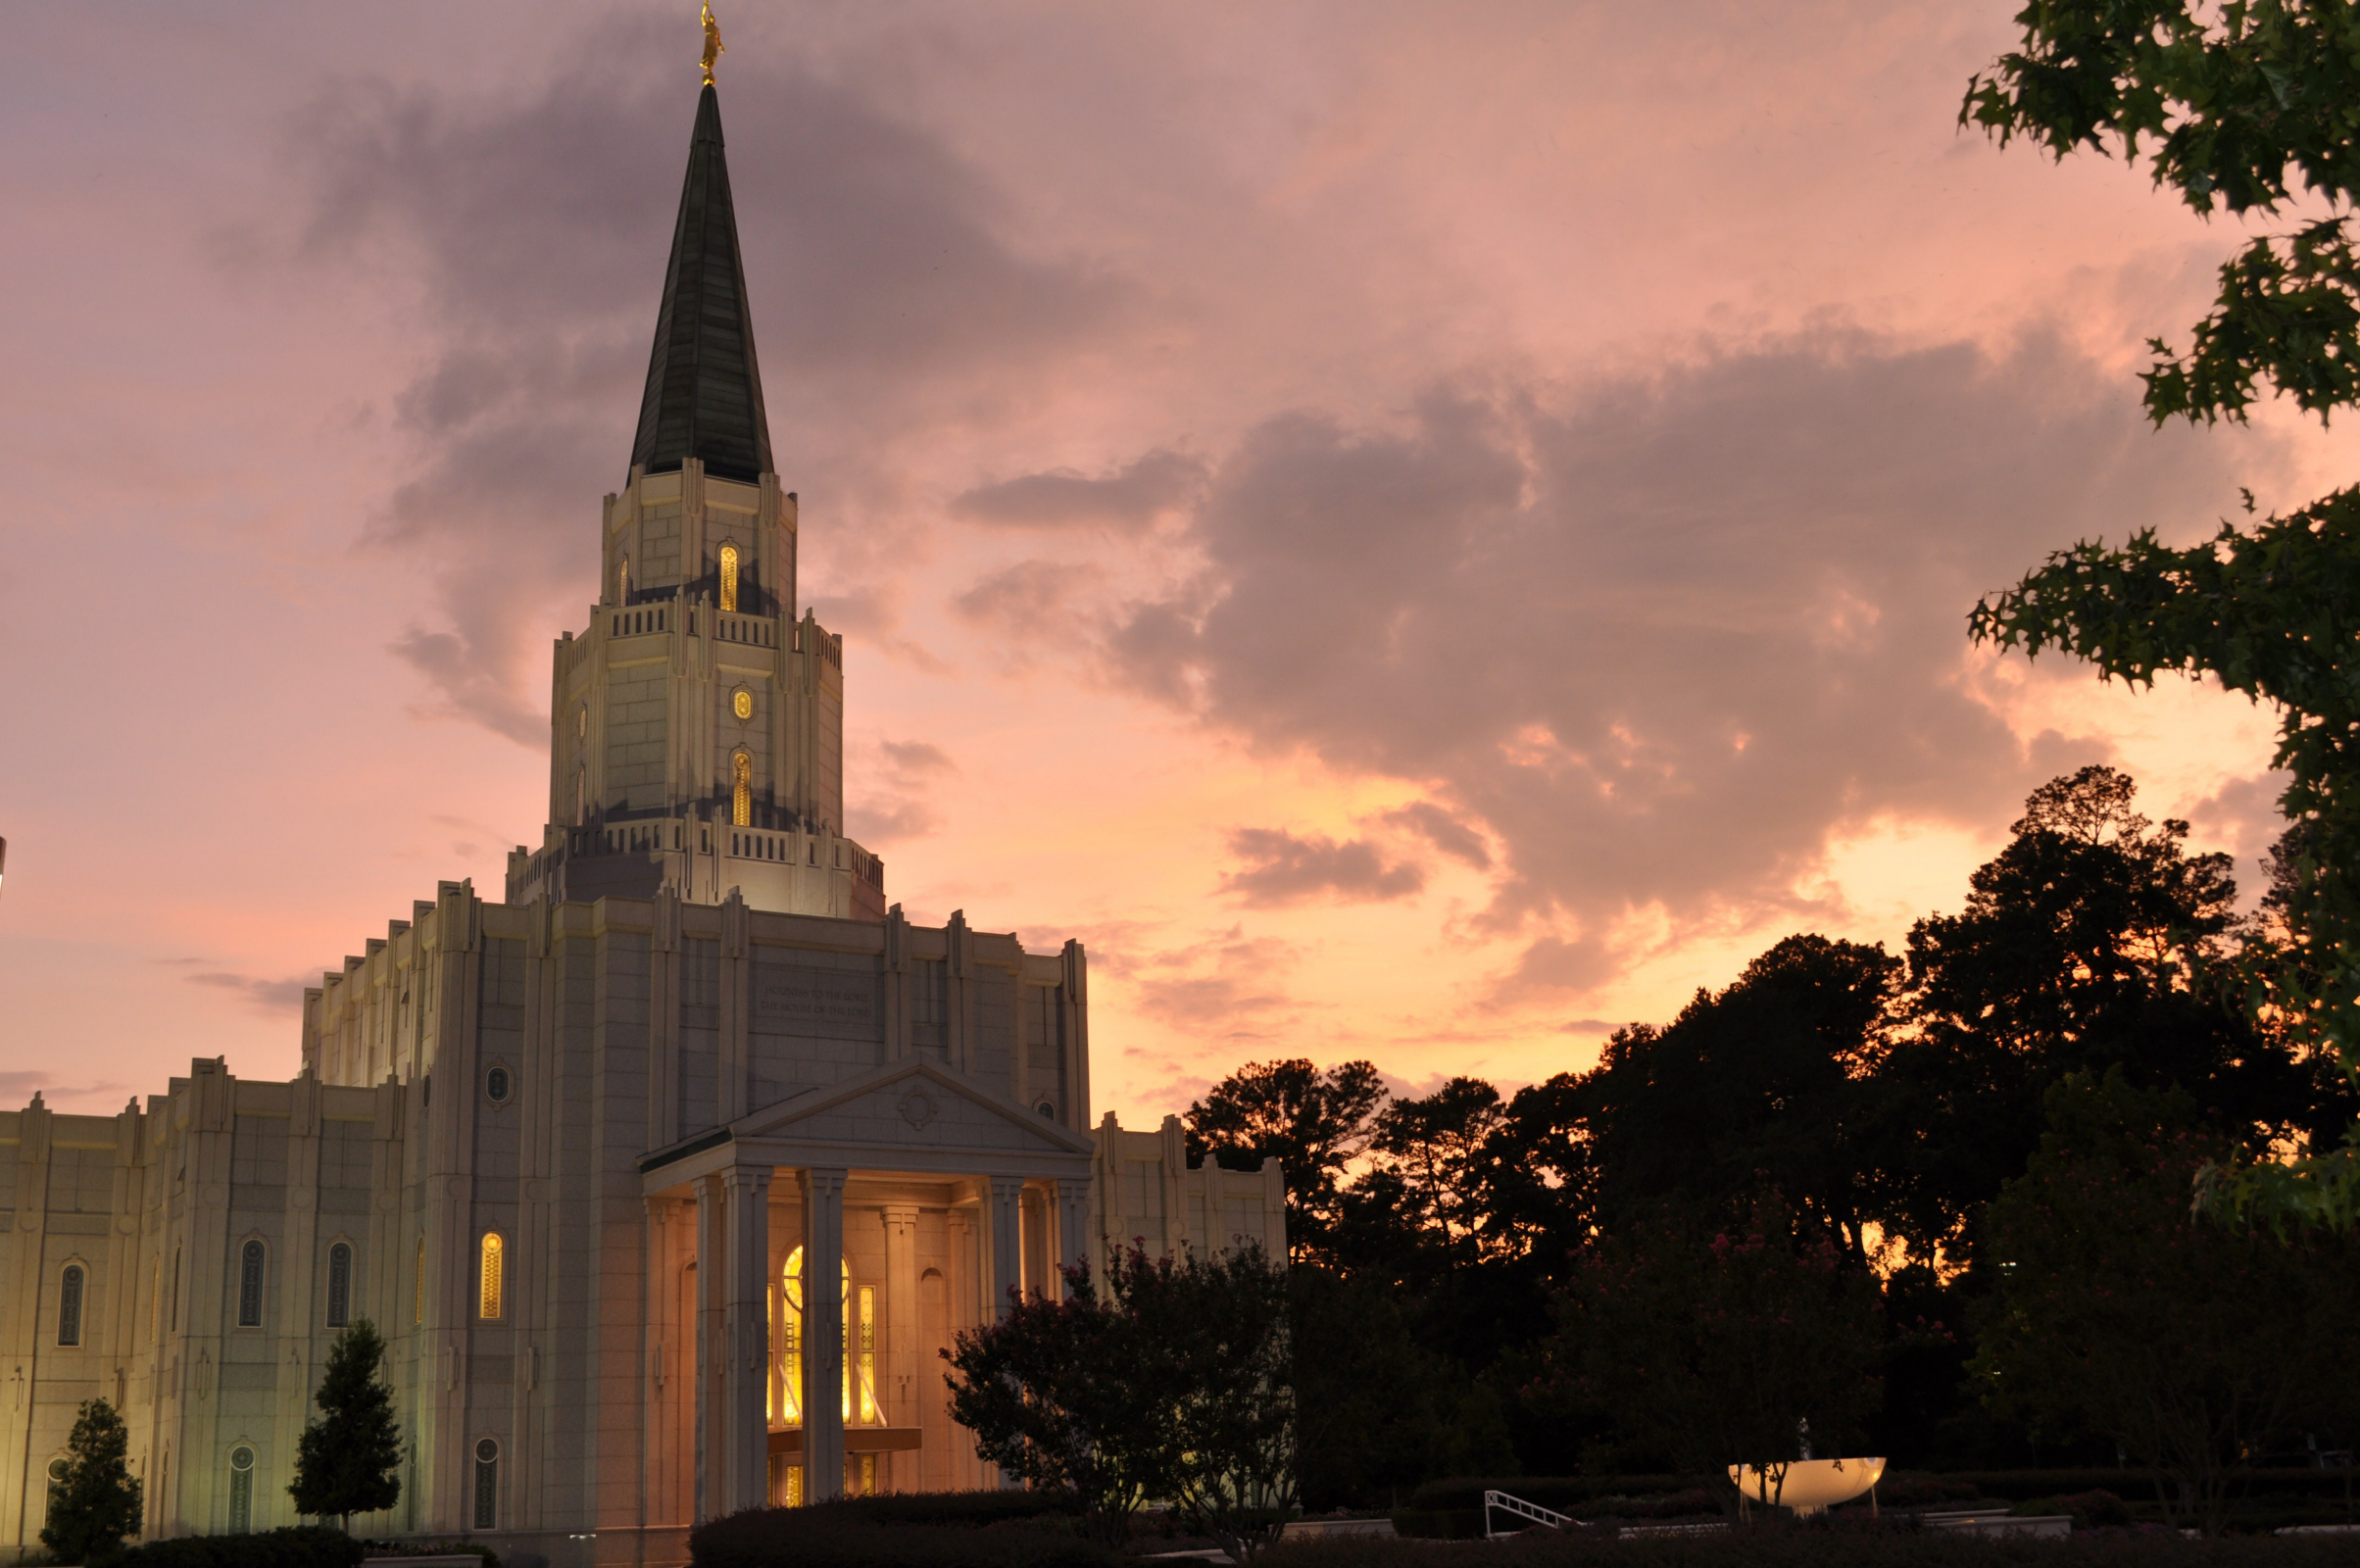 The houston texas temple at sunset - Lds temple wallpaper ...